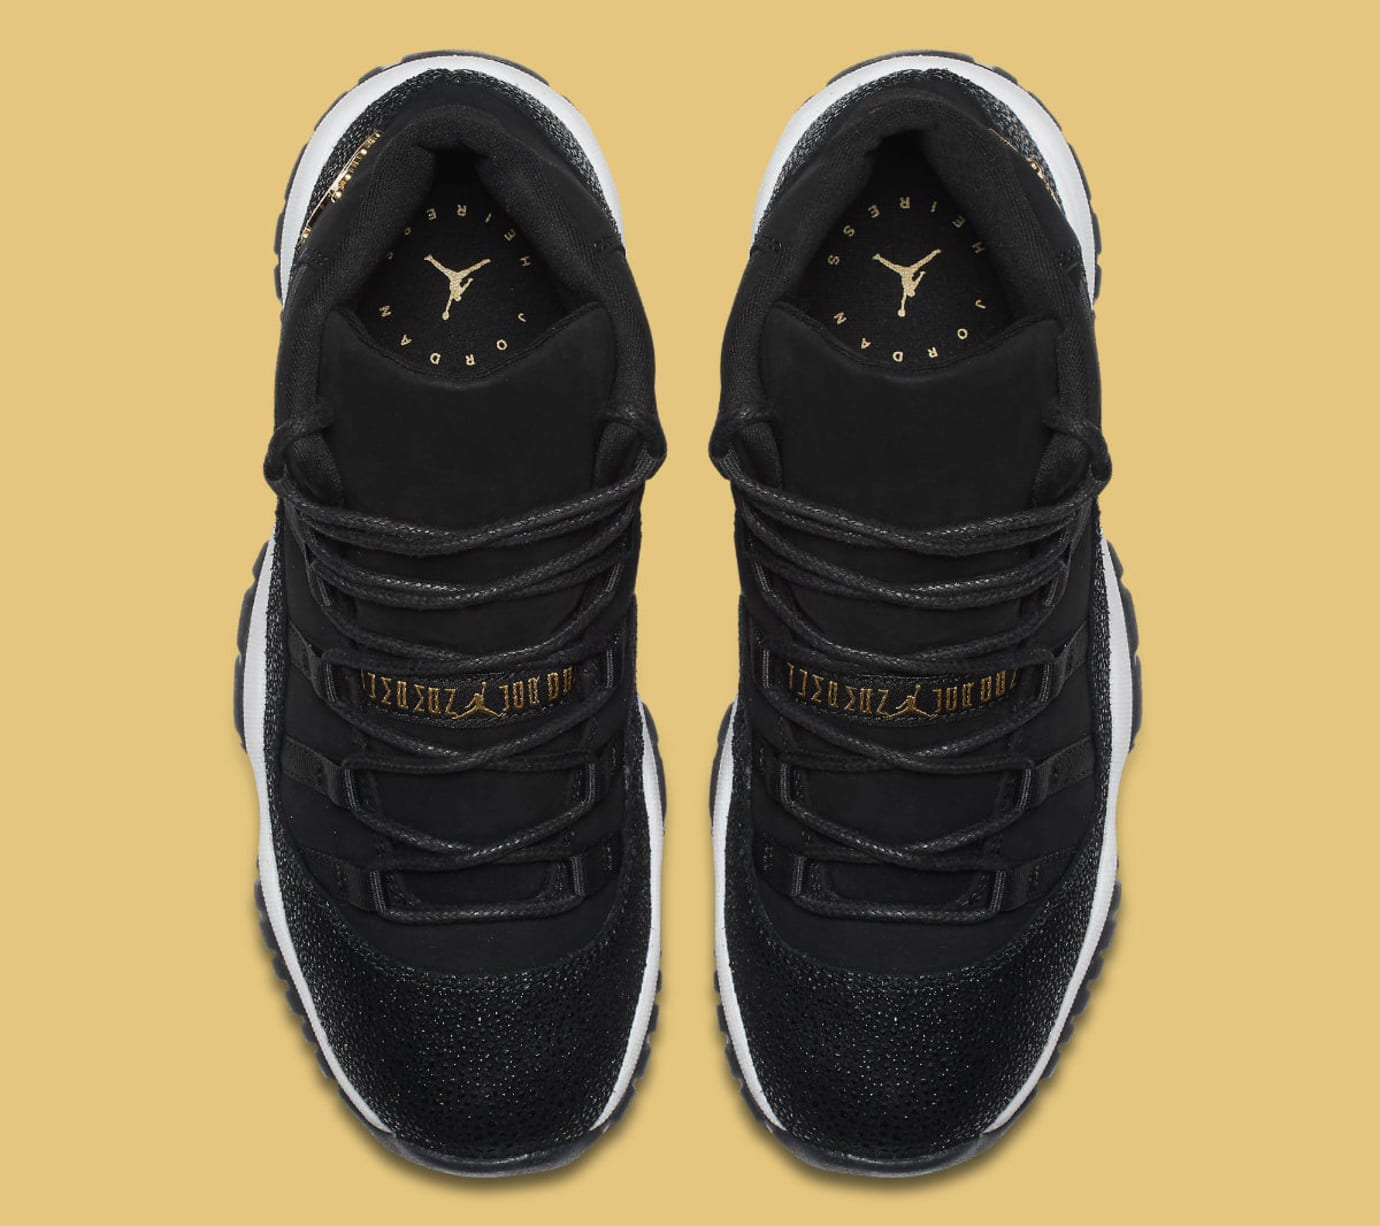 Air Jordan 11 XI Heiress Black Release Date 852625-030 Top